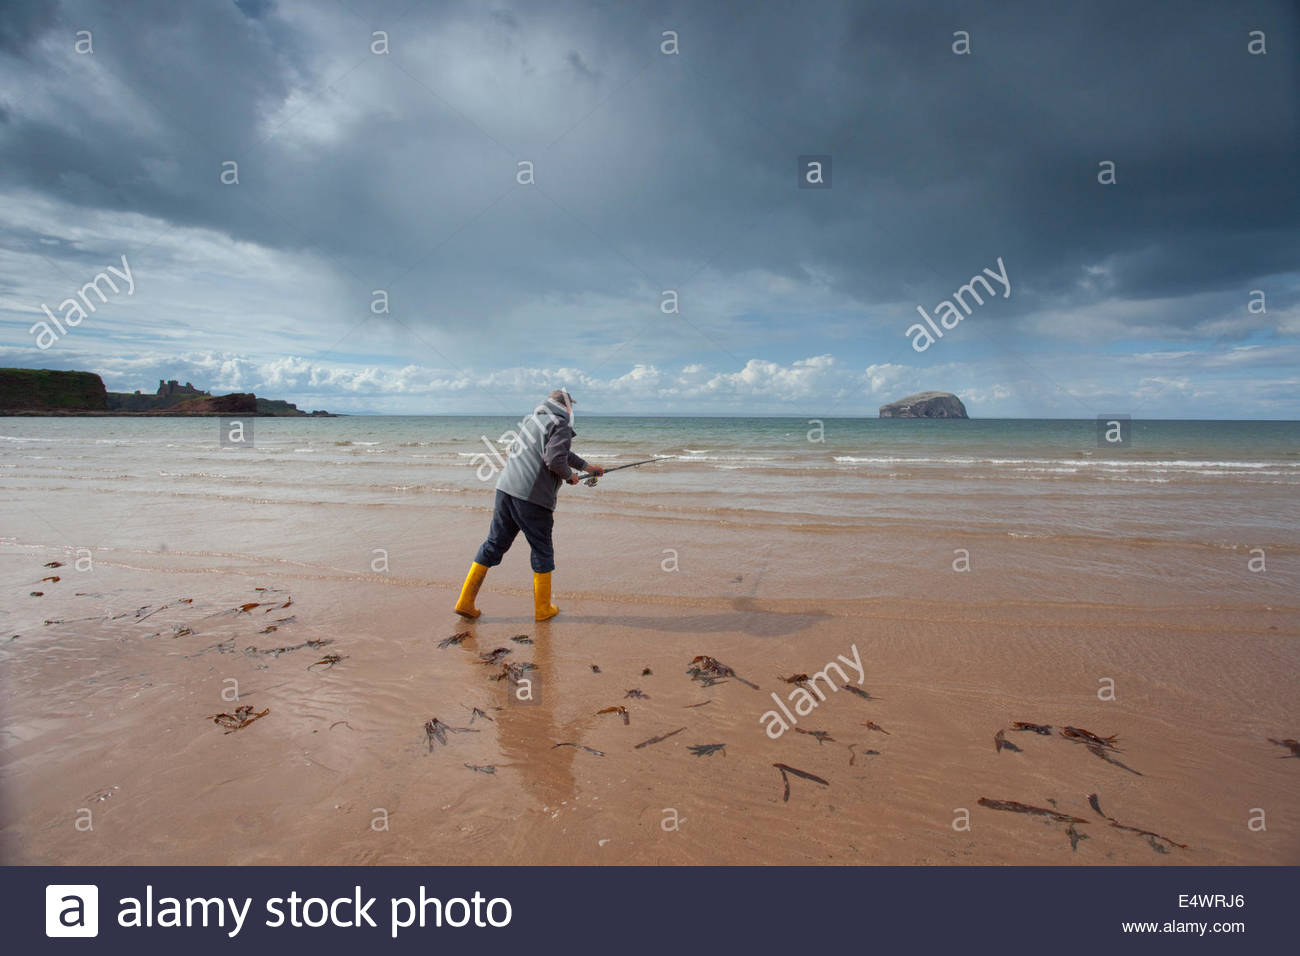 Sea angling from the beach at Seacliff with a view beyond to the Bass Rock, near North Berwick, East Lothian, Scotland. - Stock Image